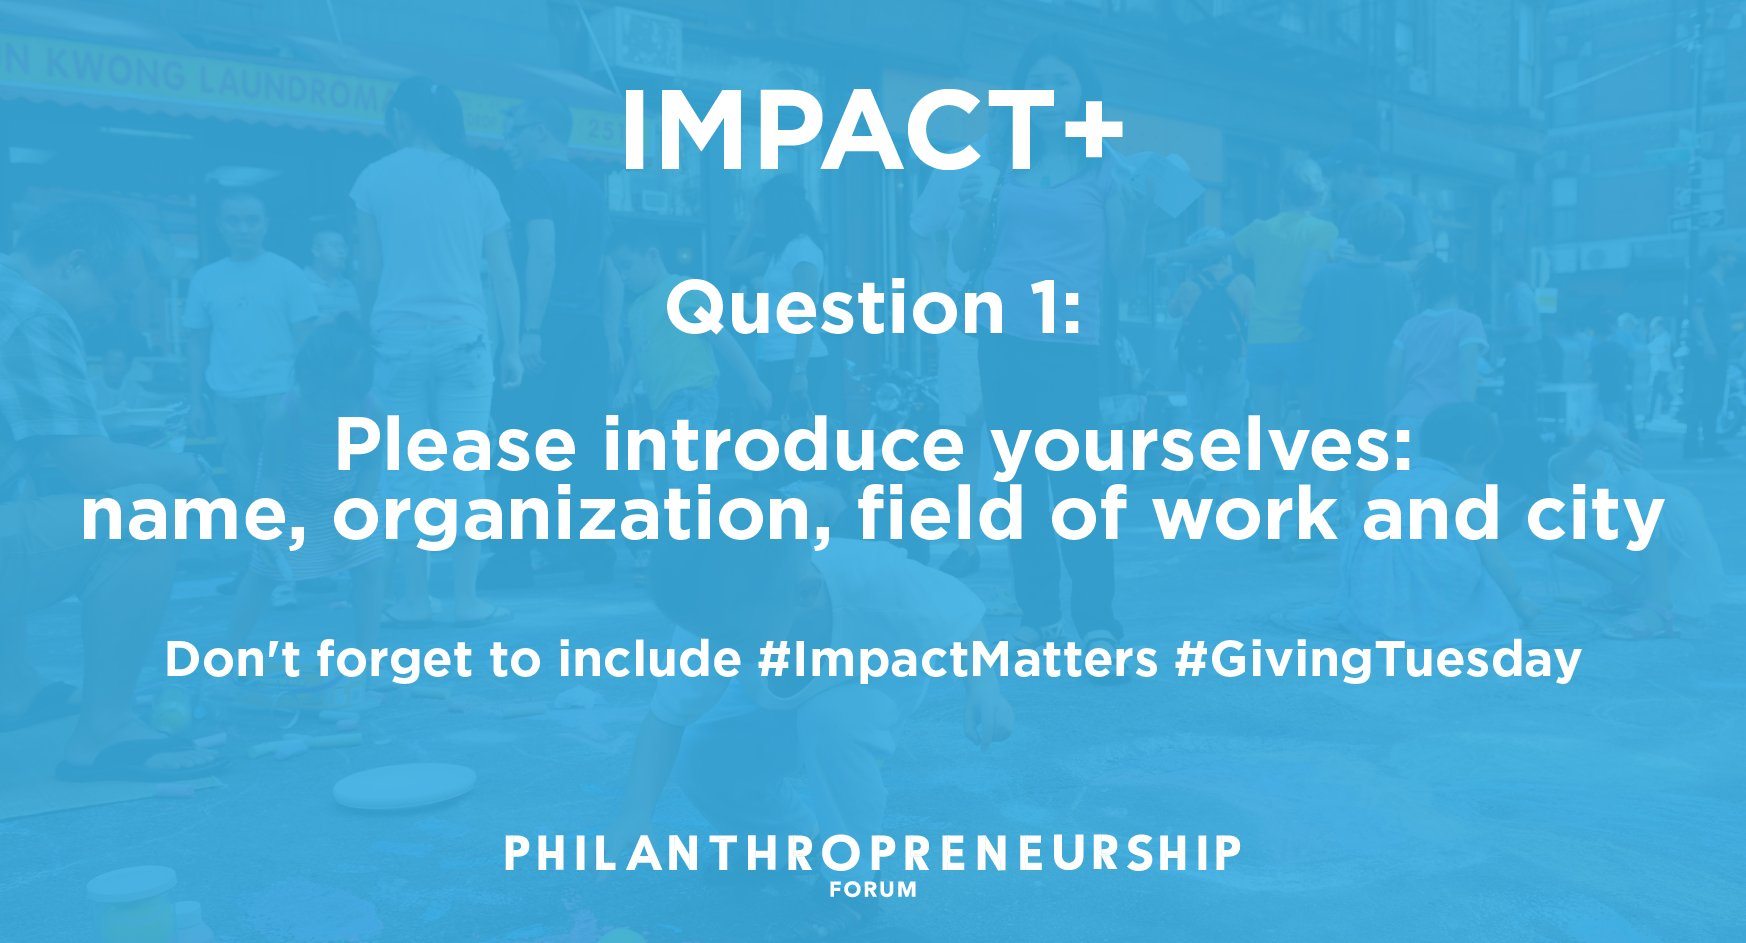 Q1: Please introduce yourselves: name, organization, field of work and city #GivingTuesday #ImpactMatters https://t.co/4En1ELMBUe